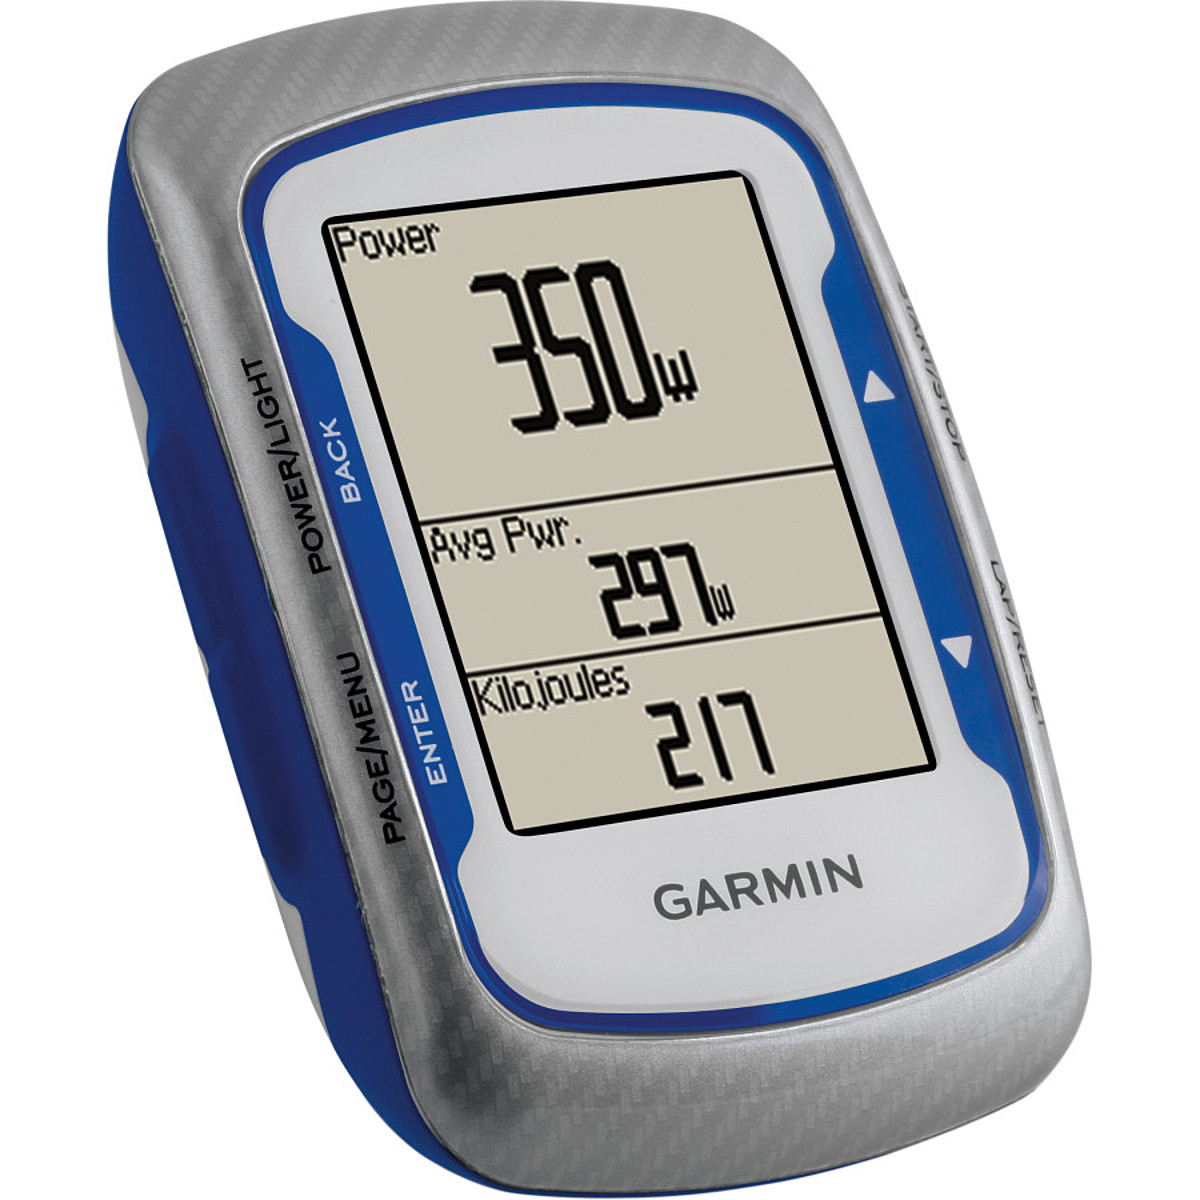 photo: Garmin Edge 500 handheld gps receiver